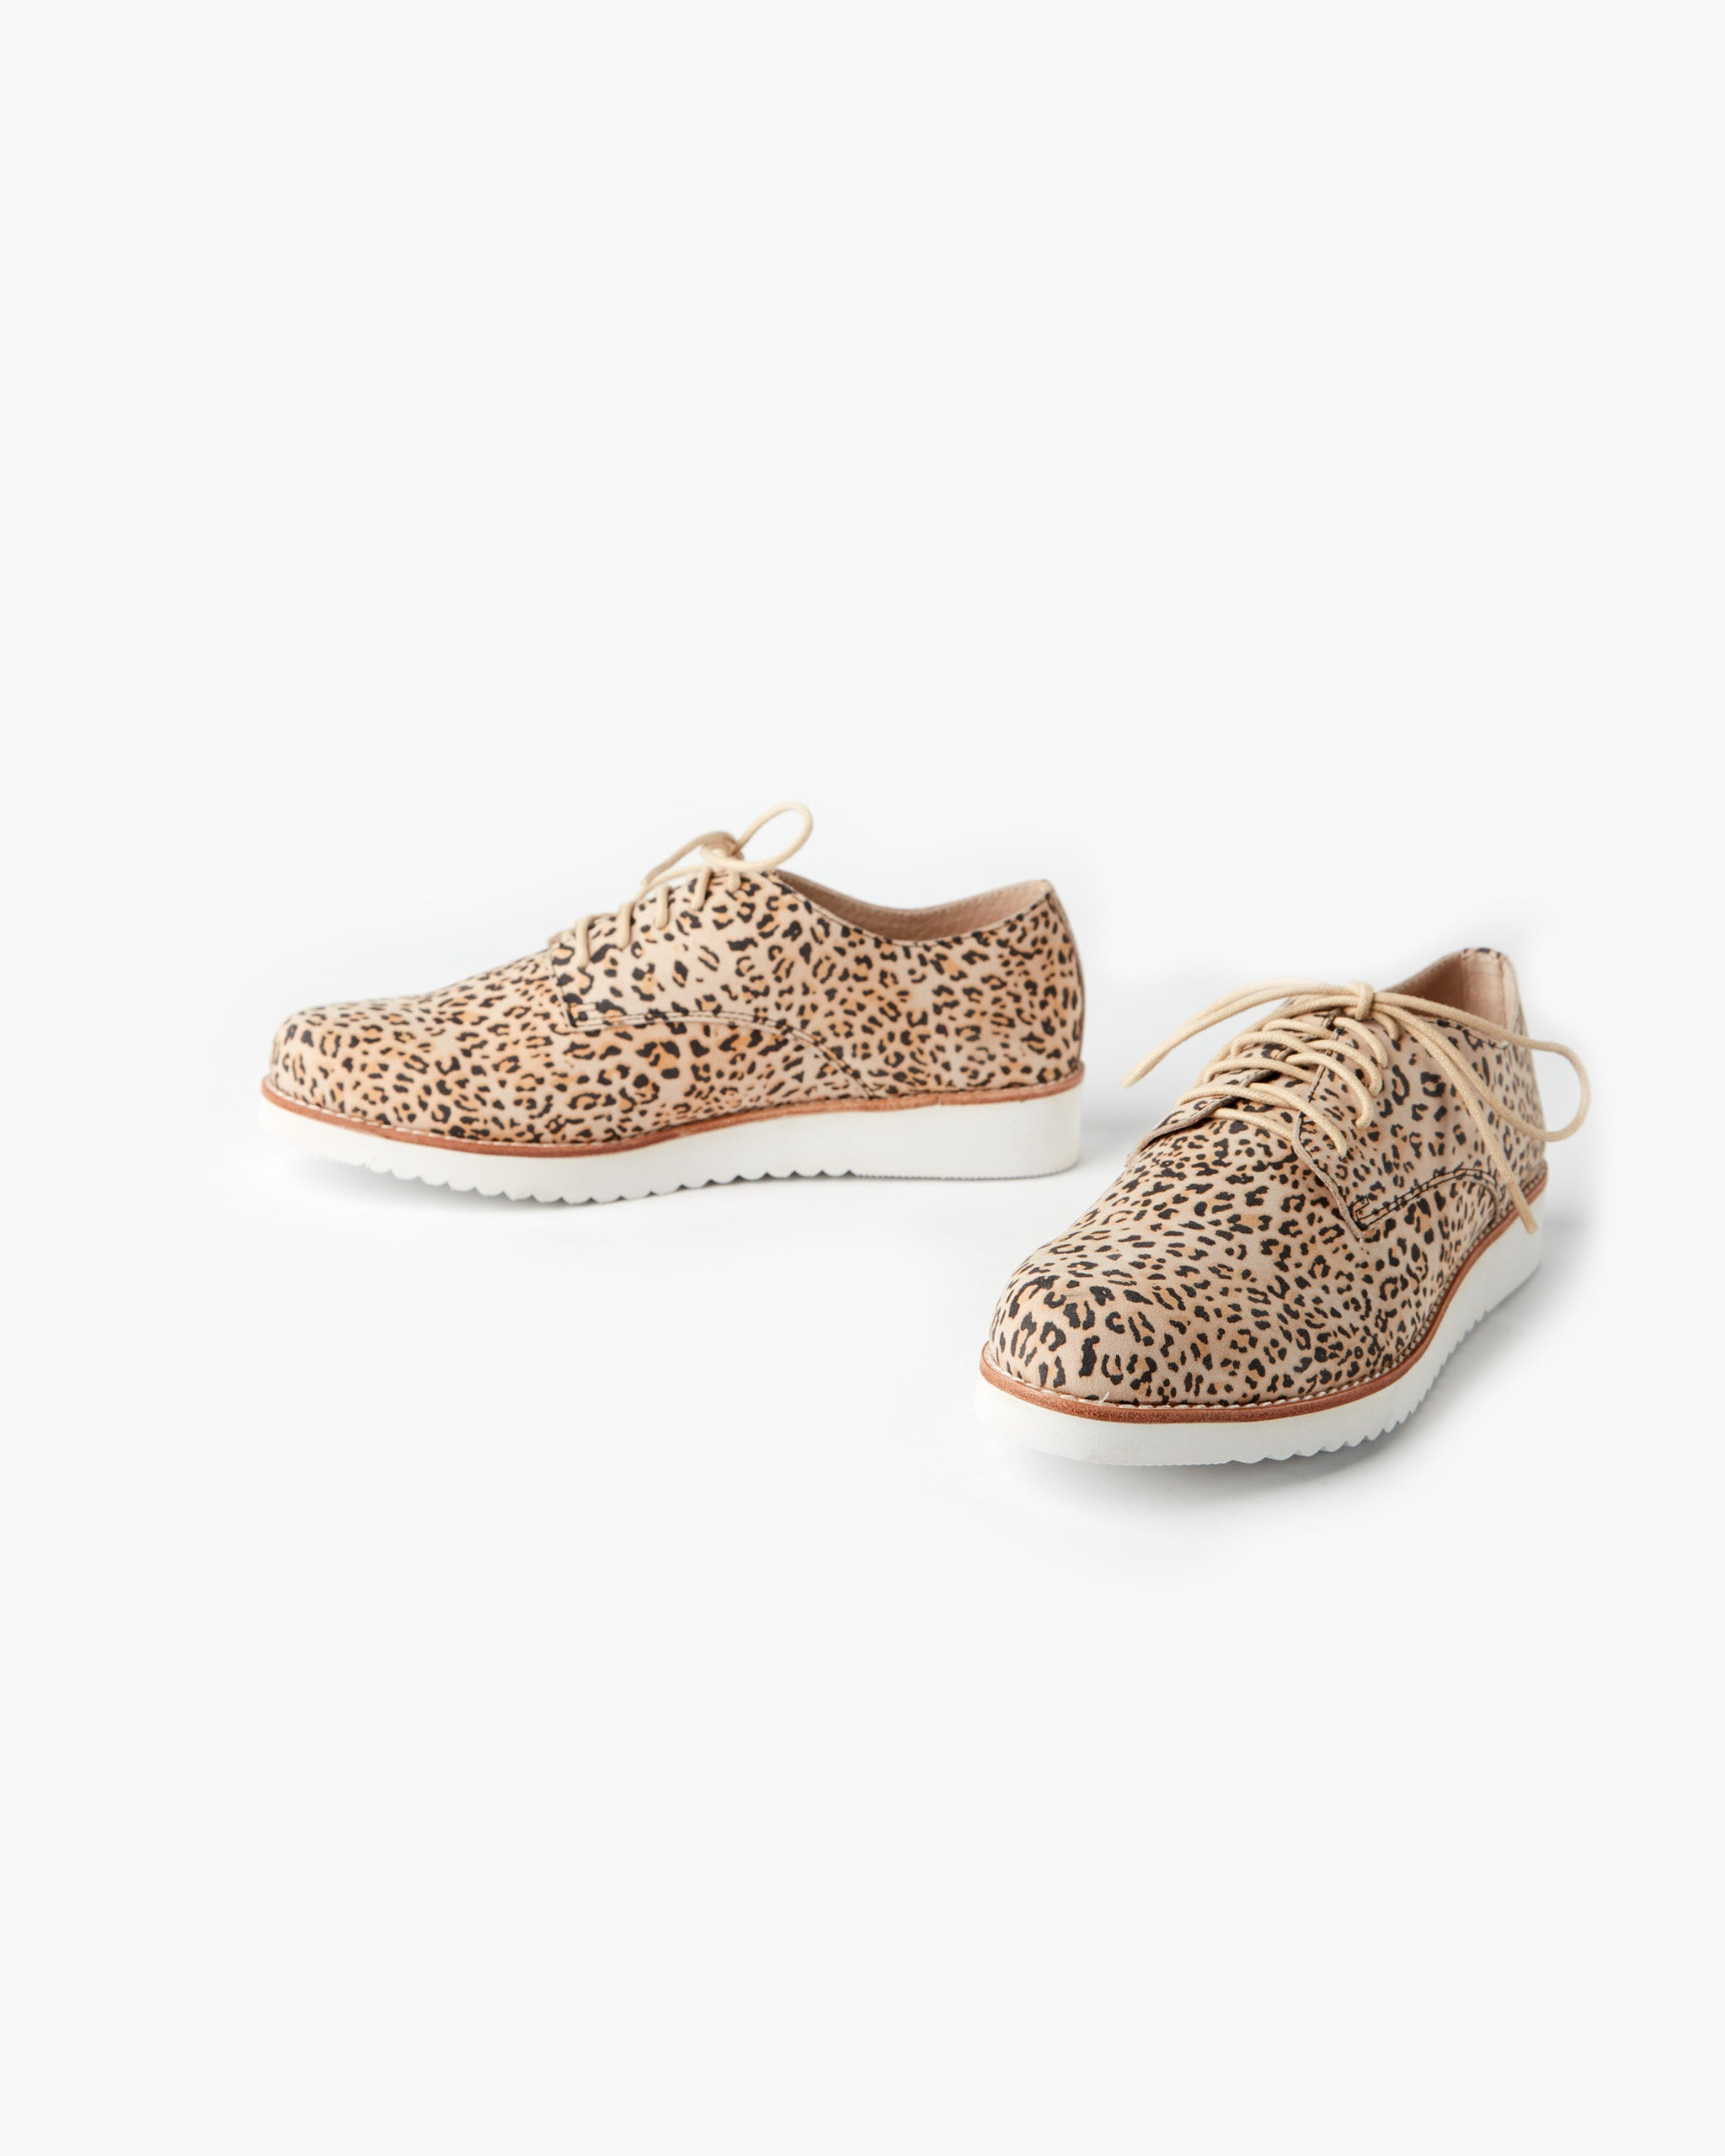 Mila Leather Lace Up - Honey Leopard